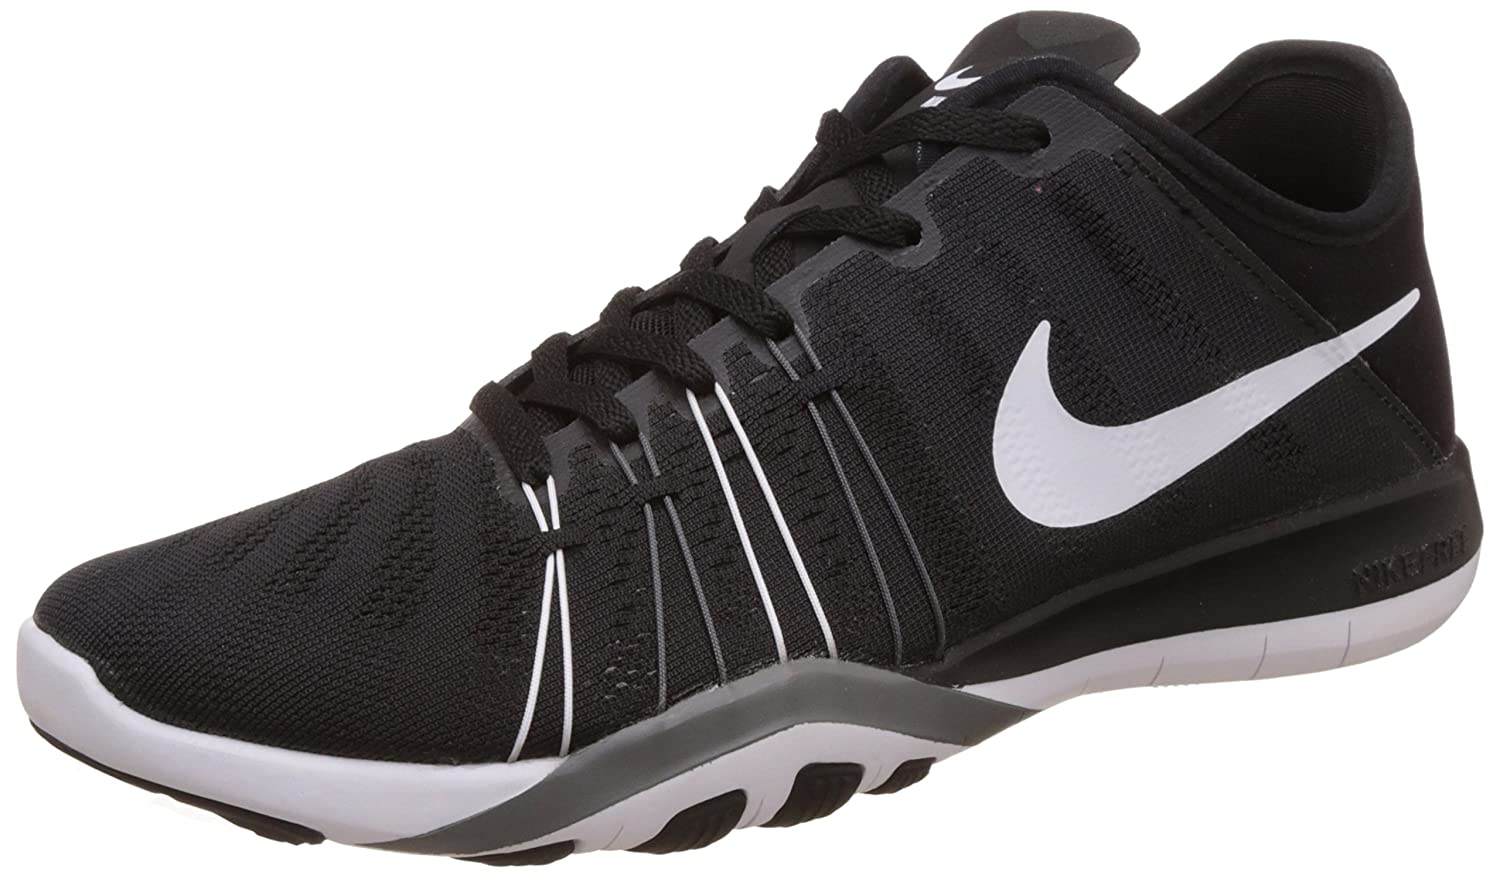 Womens Nike Free TR 6 Training Shoes B014GNBTJ2 9.5 B(M) US|Black/Cool Grey/White